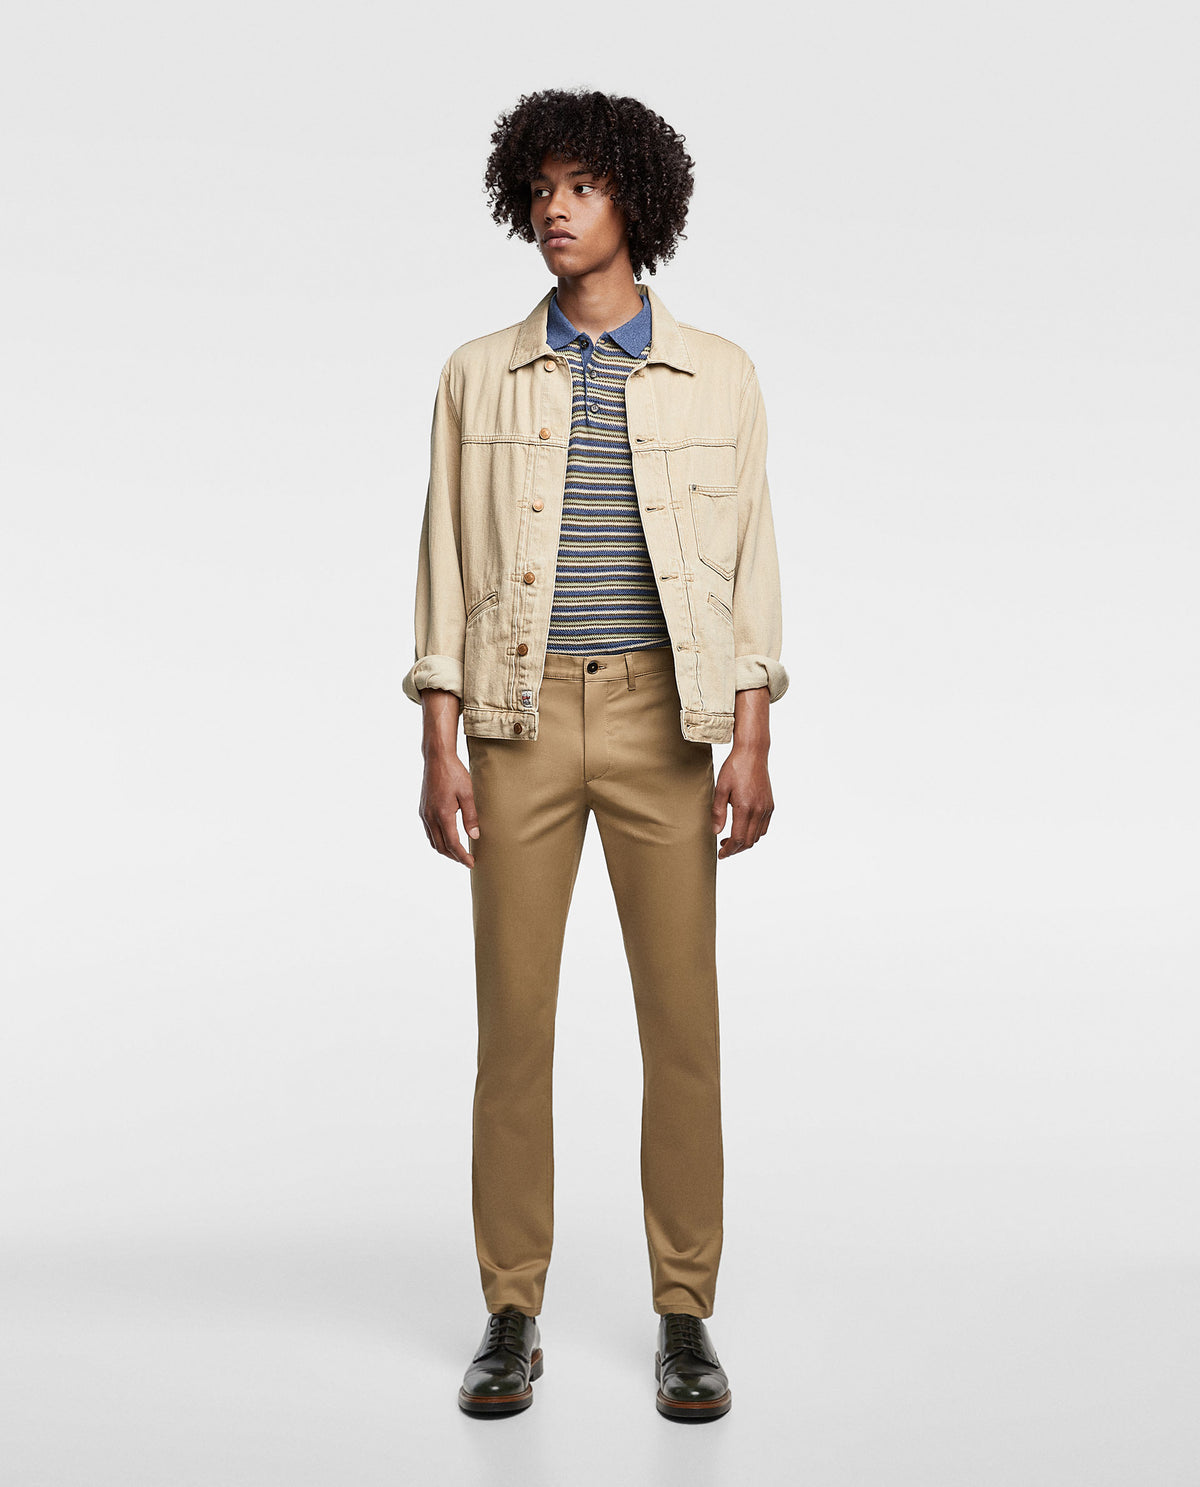 ZR - Cotton Chino 'skinny fit' Basic Collection (Camel)